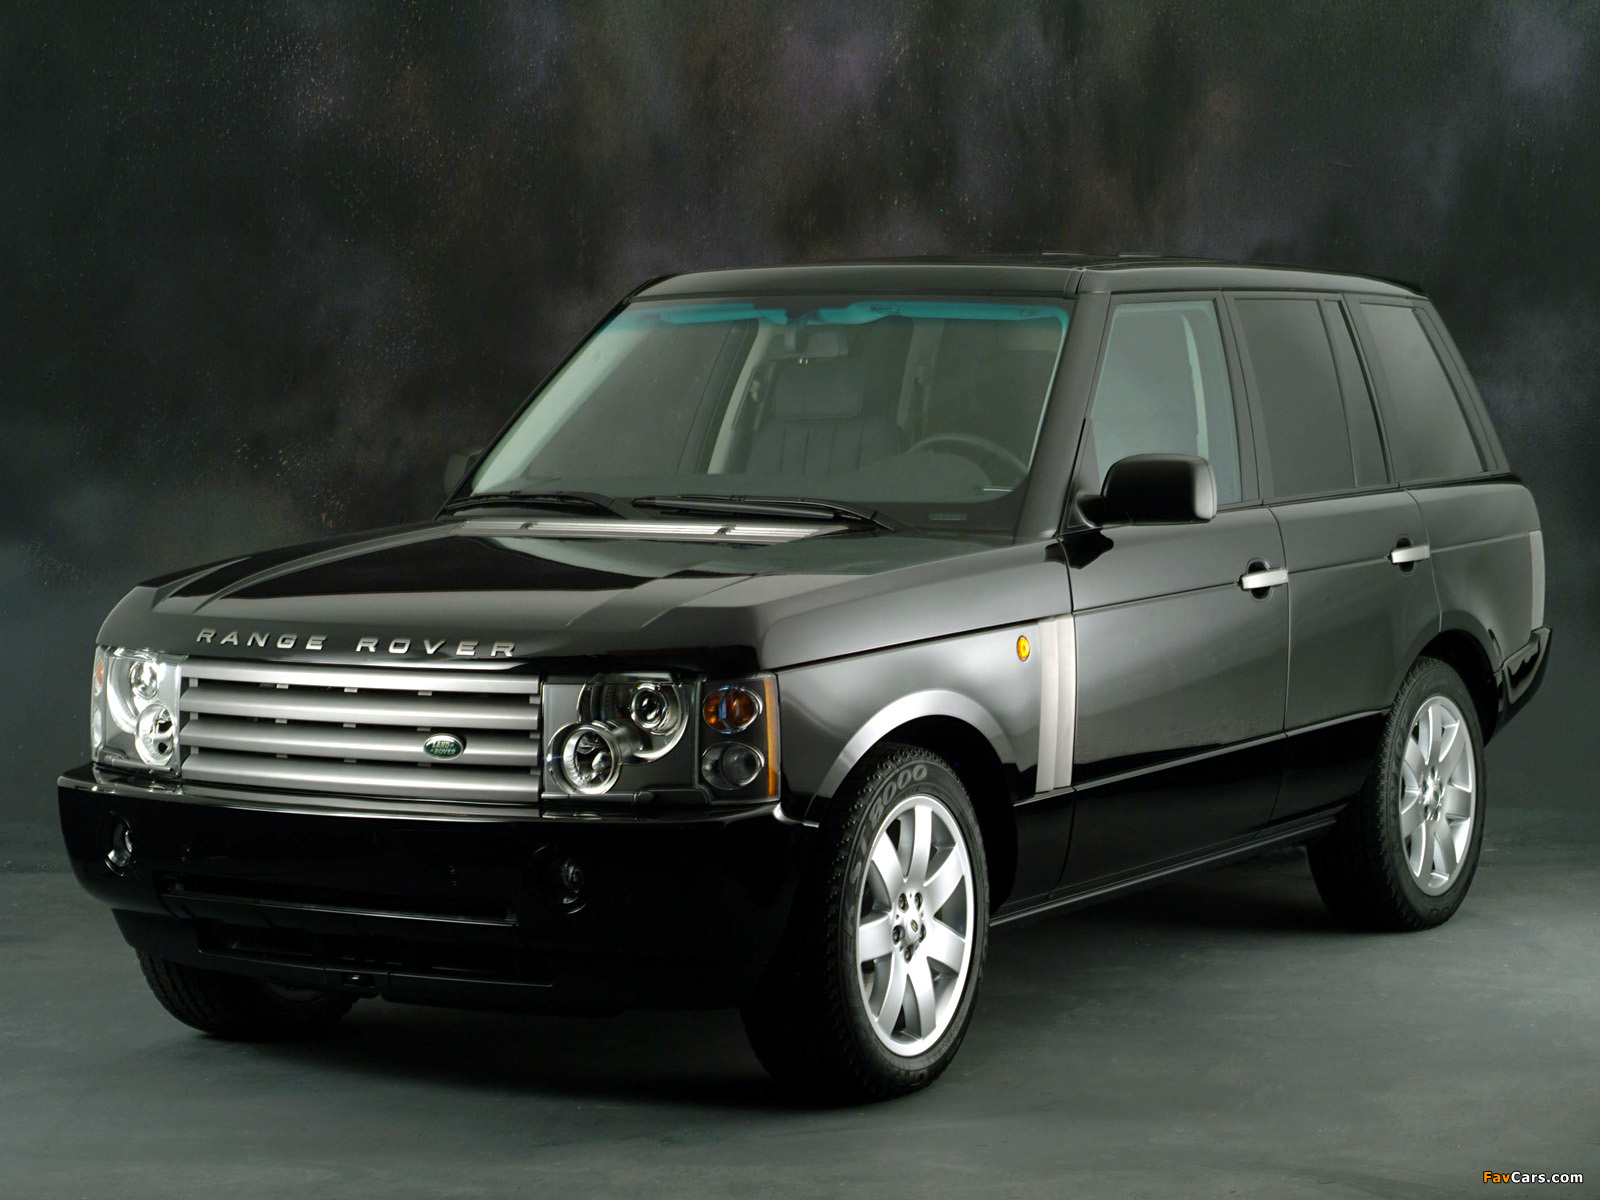 Range Rover Westminster 2003 Wallpapers 1600x1200